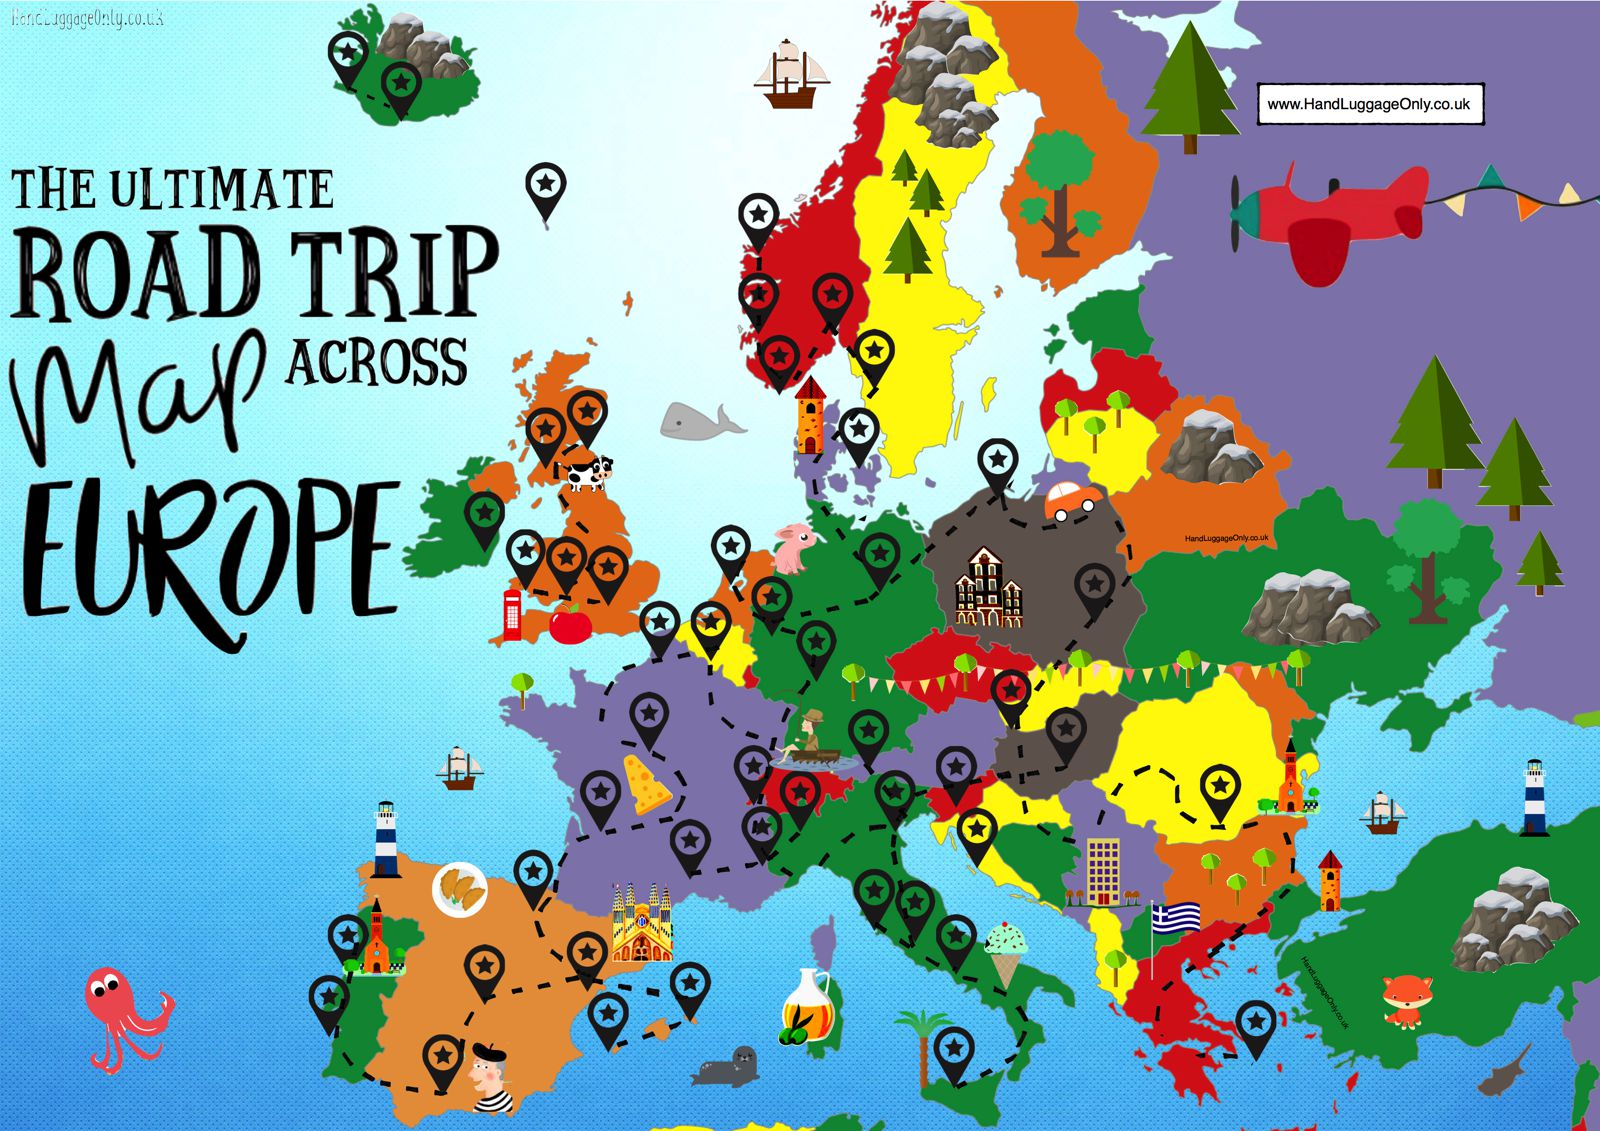 The Complete Europe Road Trip Map 49 Places To Visit And Things To